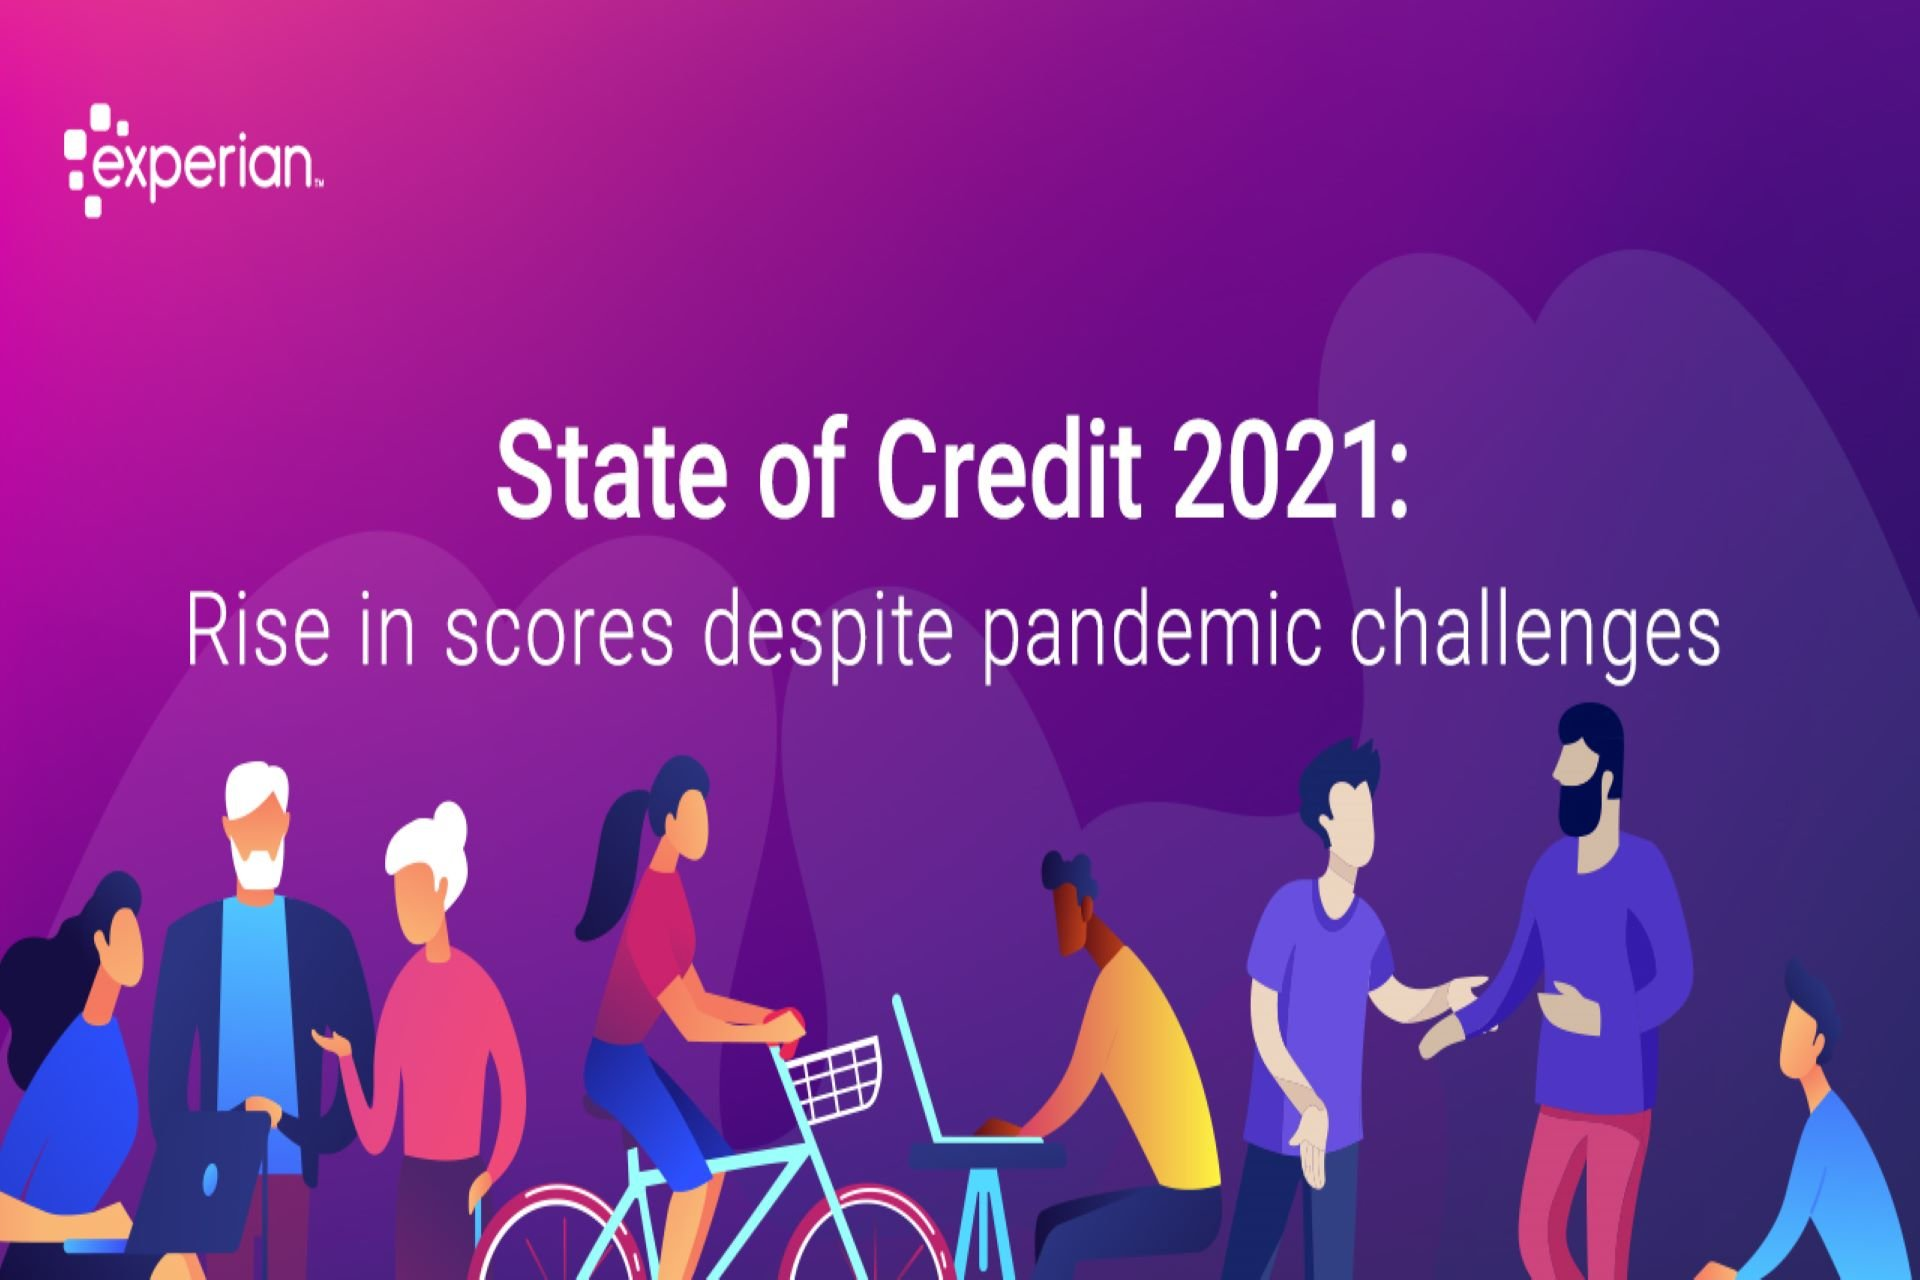 experian-state-of-credit-report-shows-rising-credit-scores